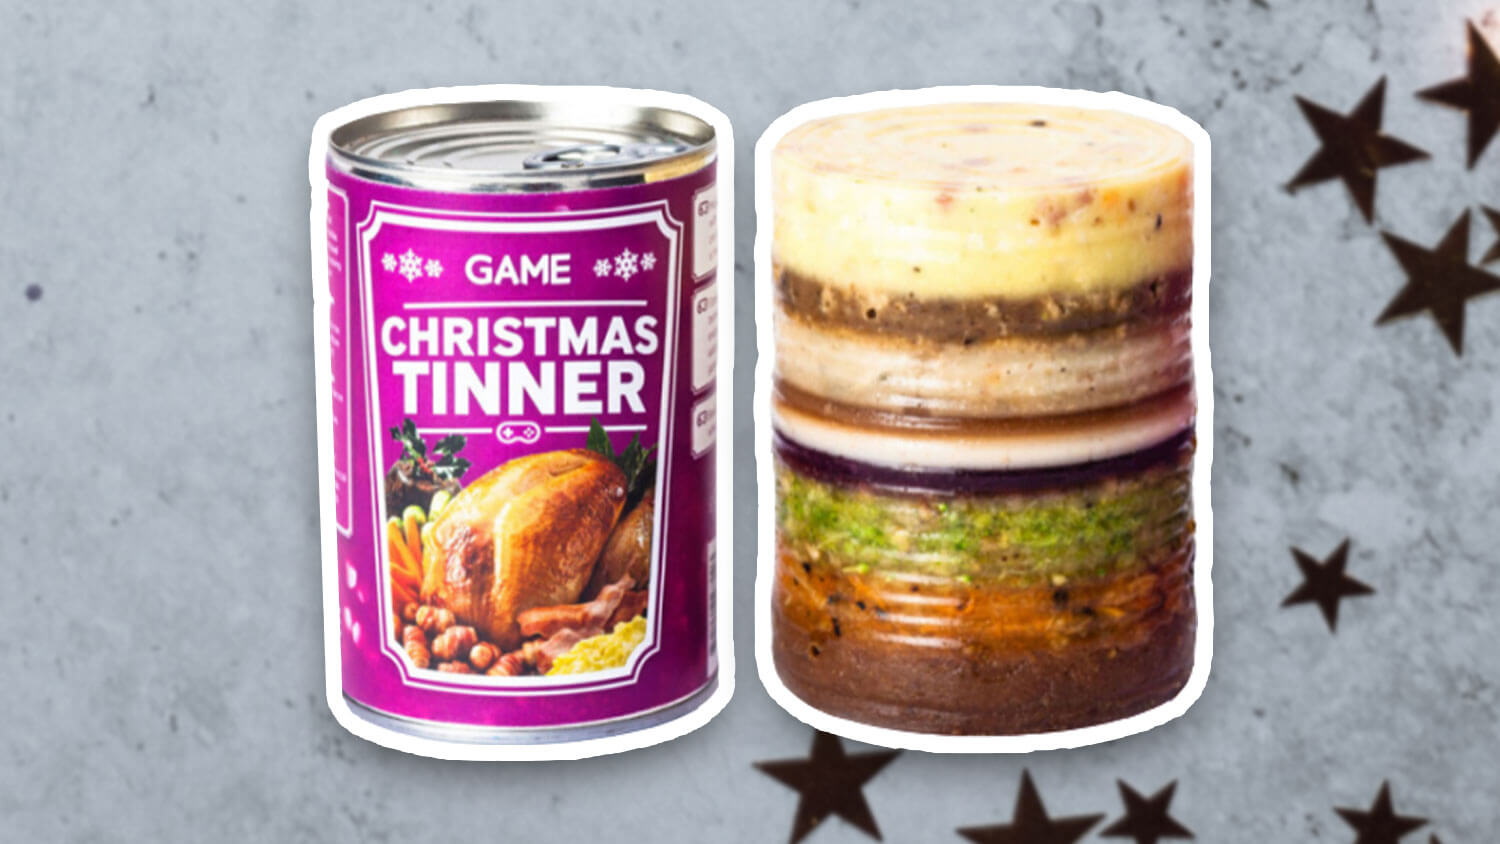 Game's 12-Layer Vegan Christmas Tinner Is the Gift That Keeps On Giving